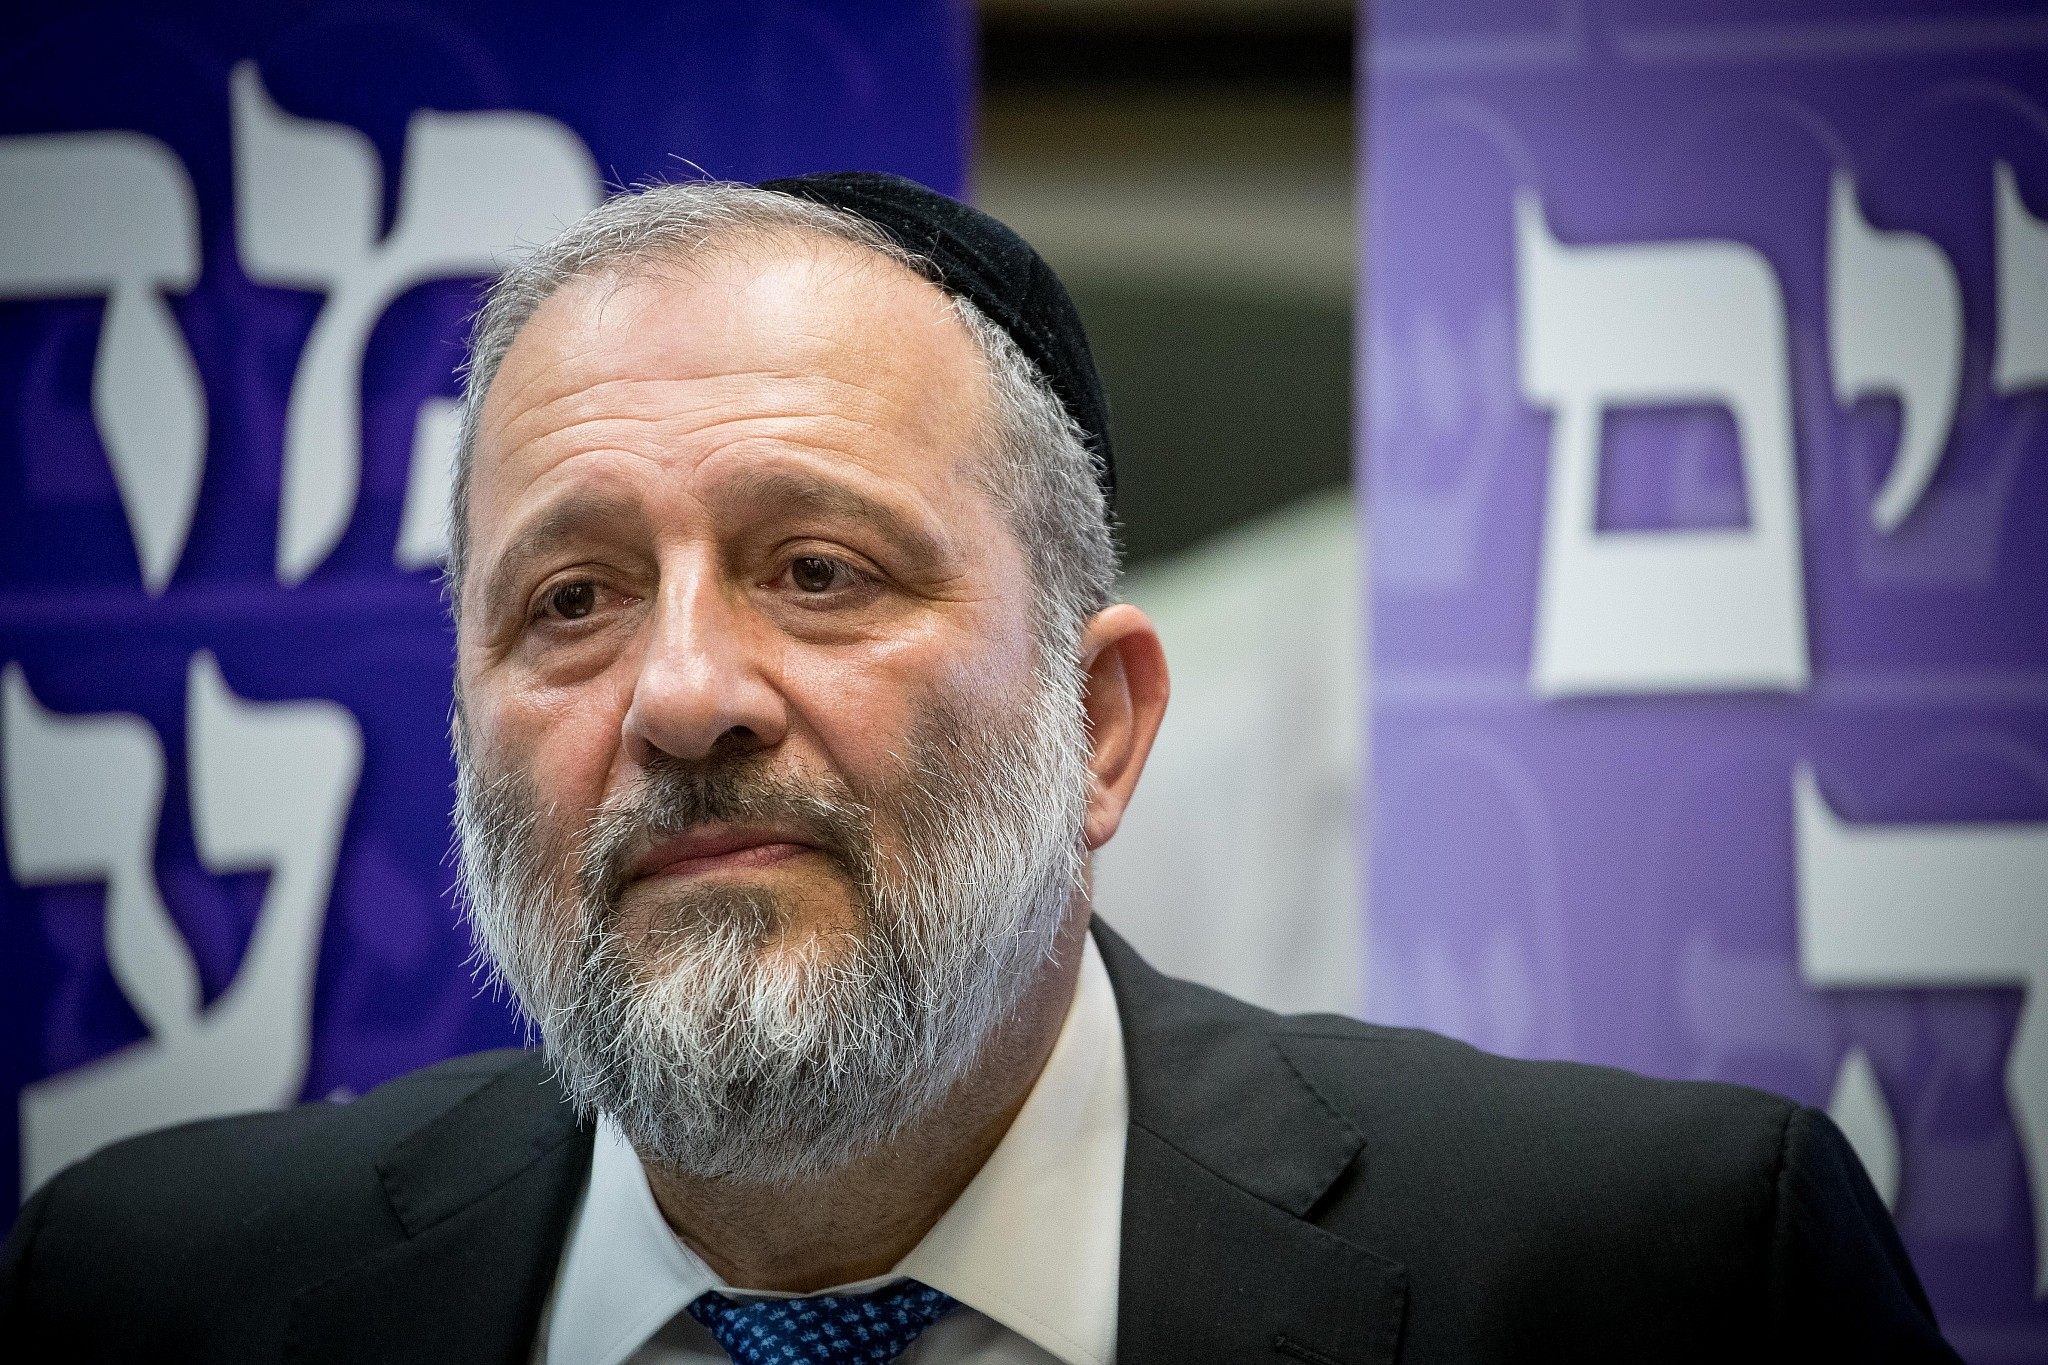 Deri questioned by anti-fraud unit in ongoing graft case | The Times